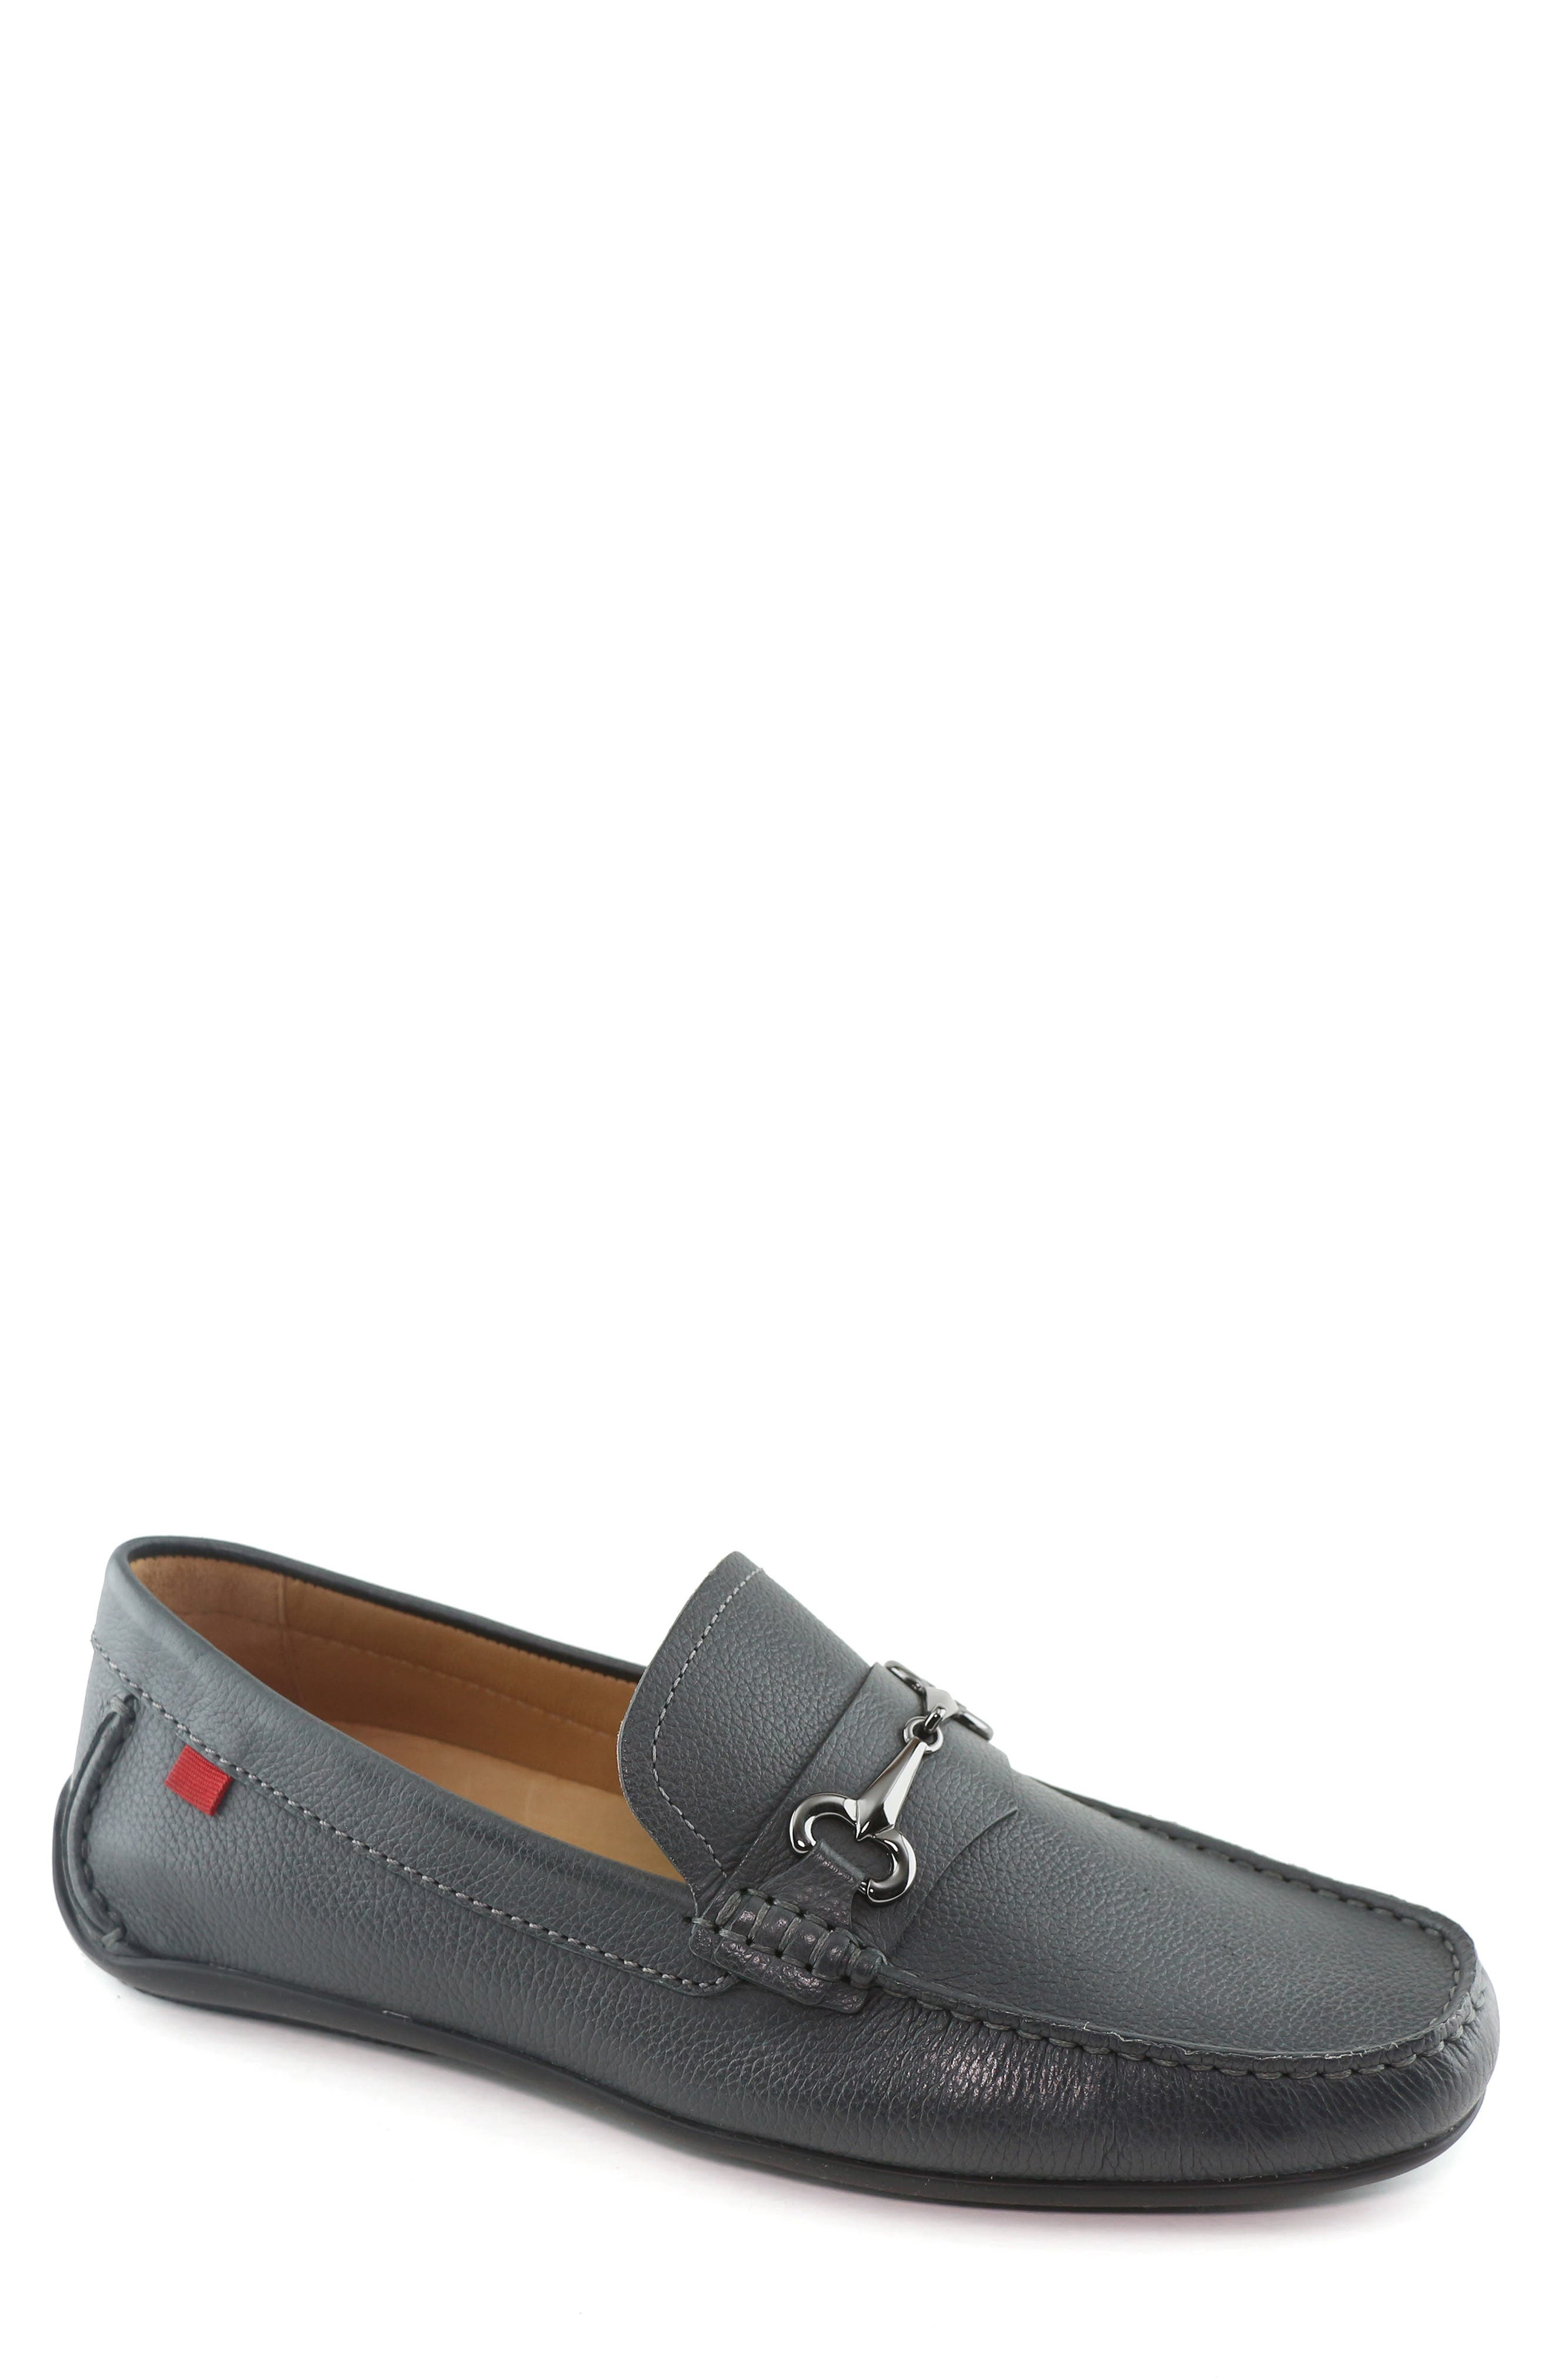 MARC JOSEPH NEW YORK Wall Street Driving Shoe, Main, color, GREY LEATHER